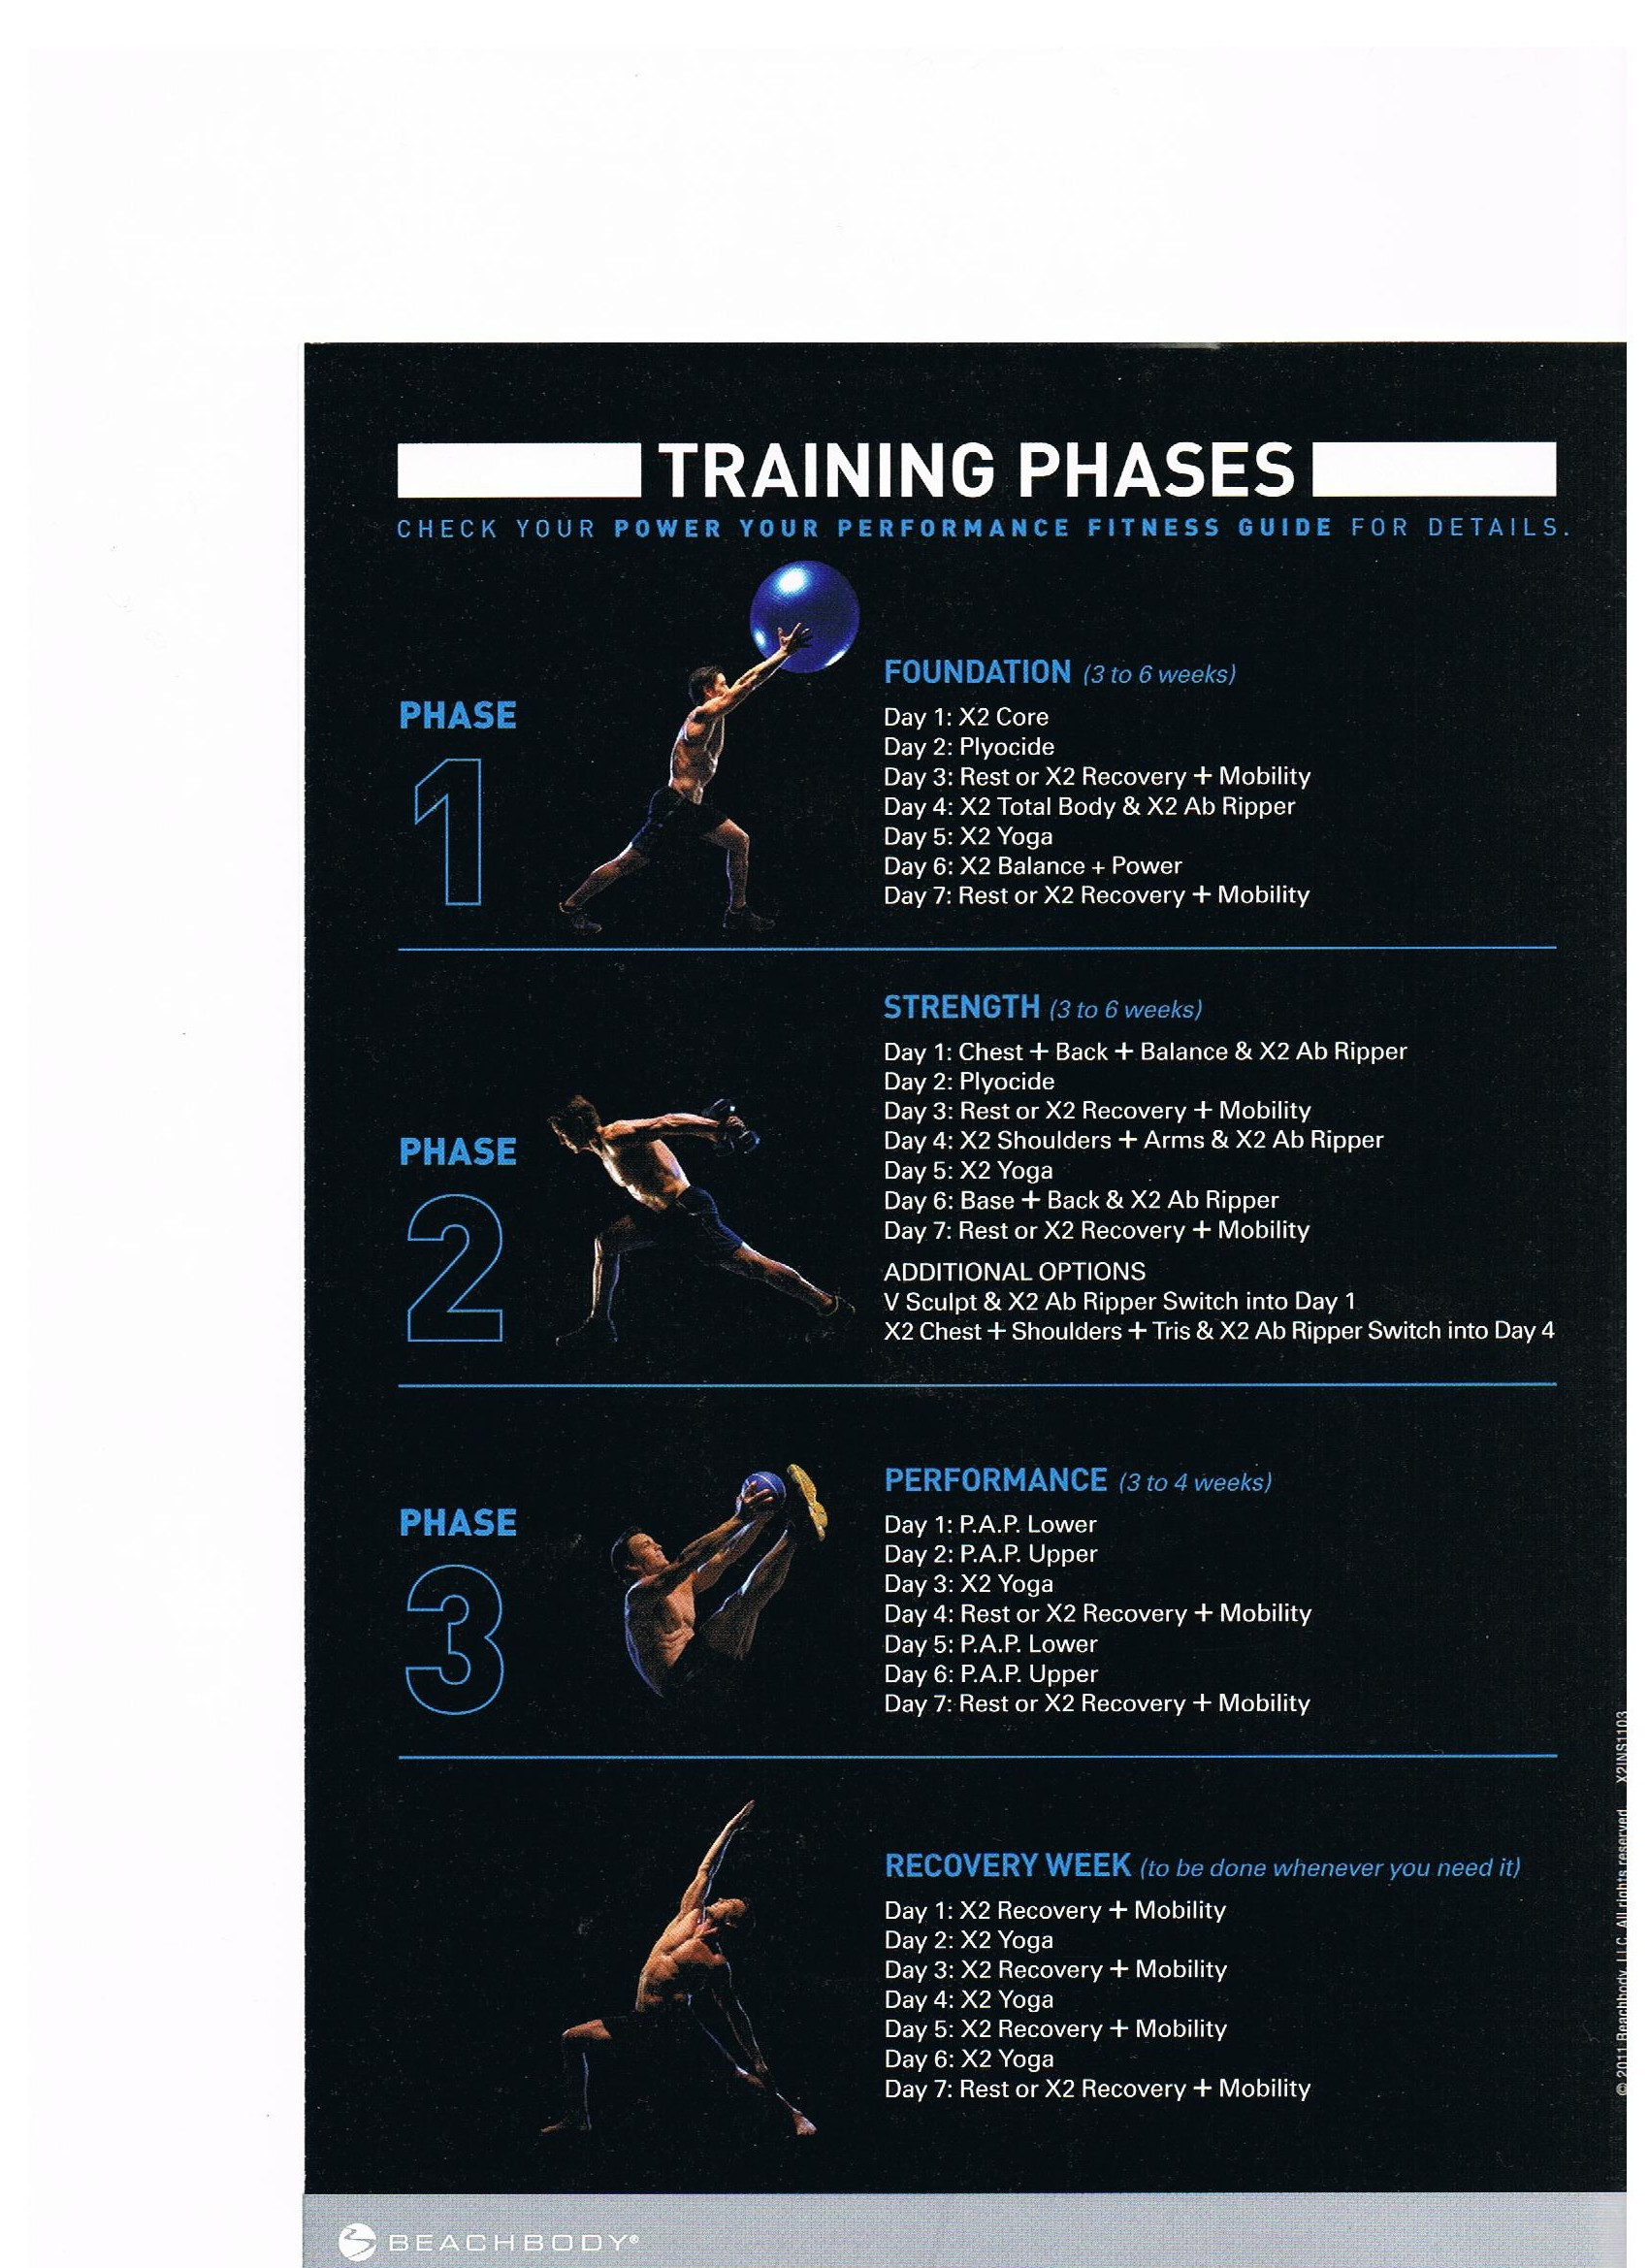 P90x2 Schedule Elite Athlete Training